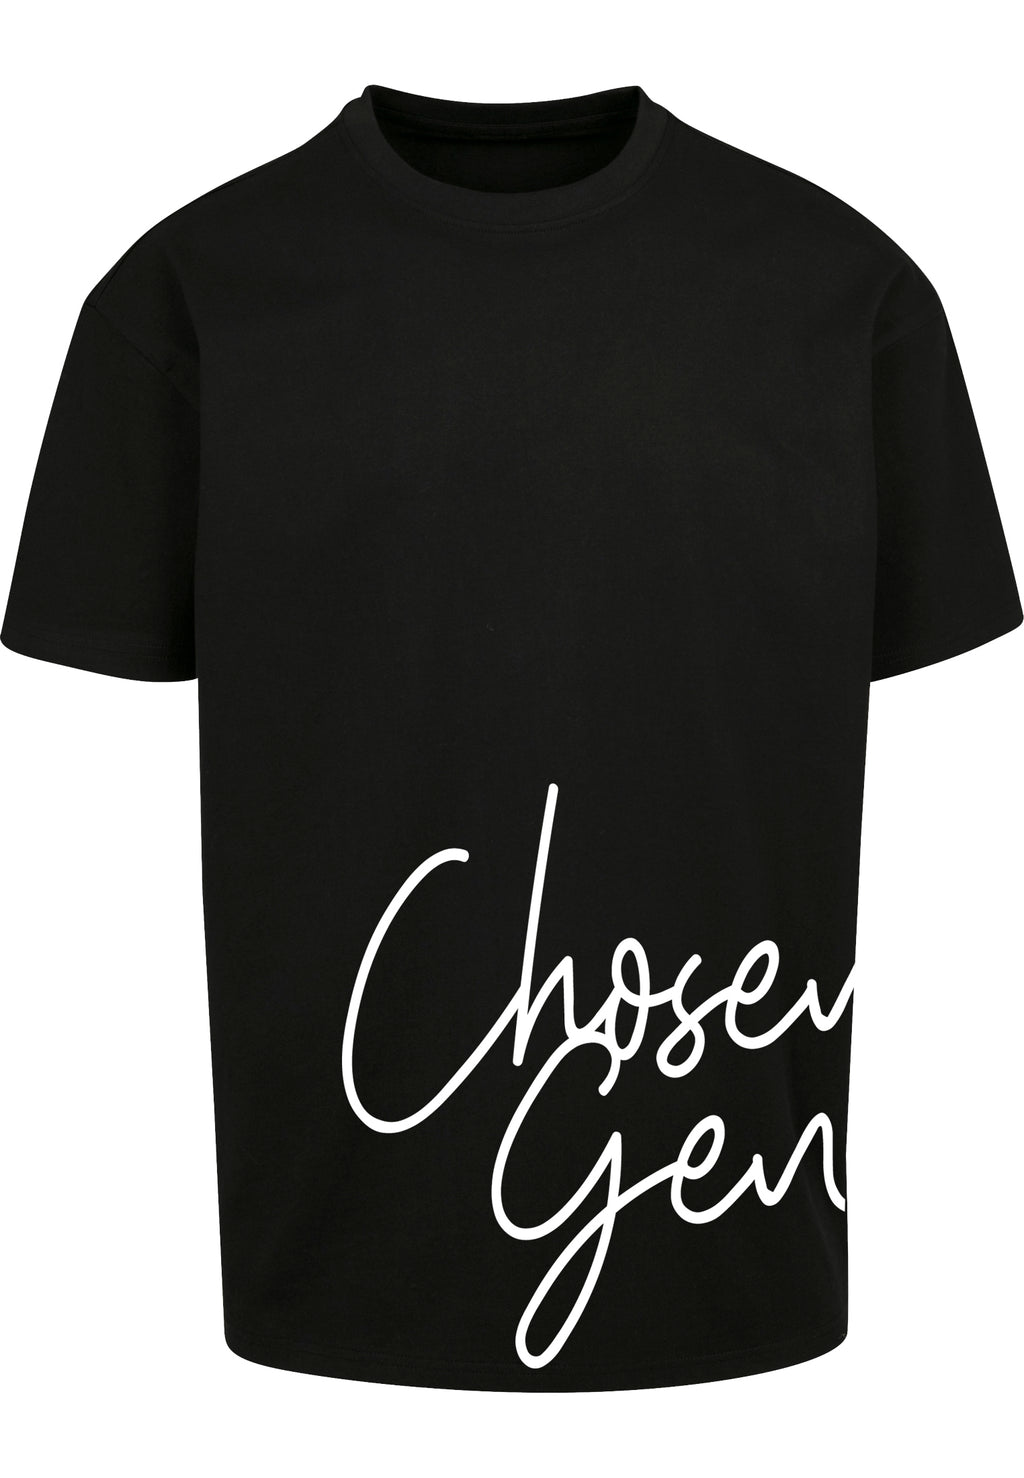 CHOSEN GEN Unisex Oversized T-Shirt (Black)